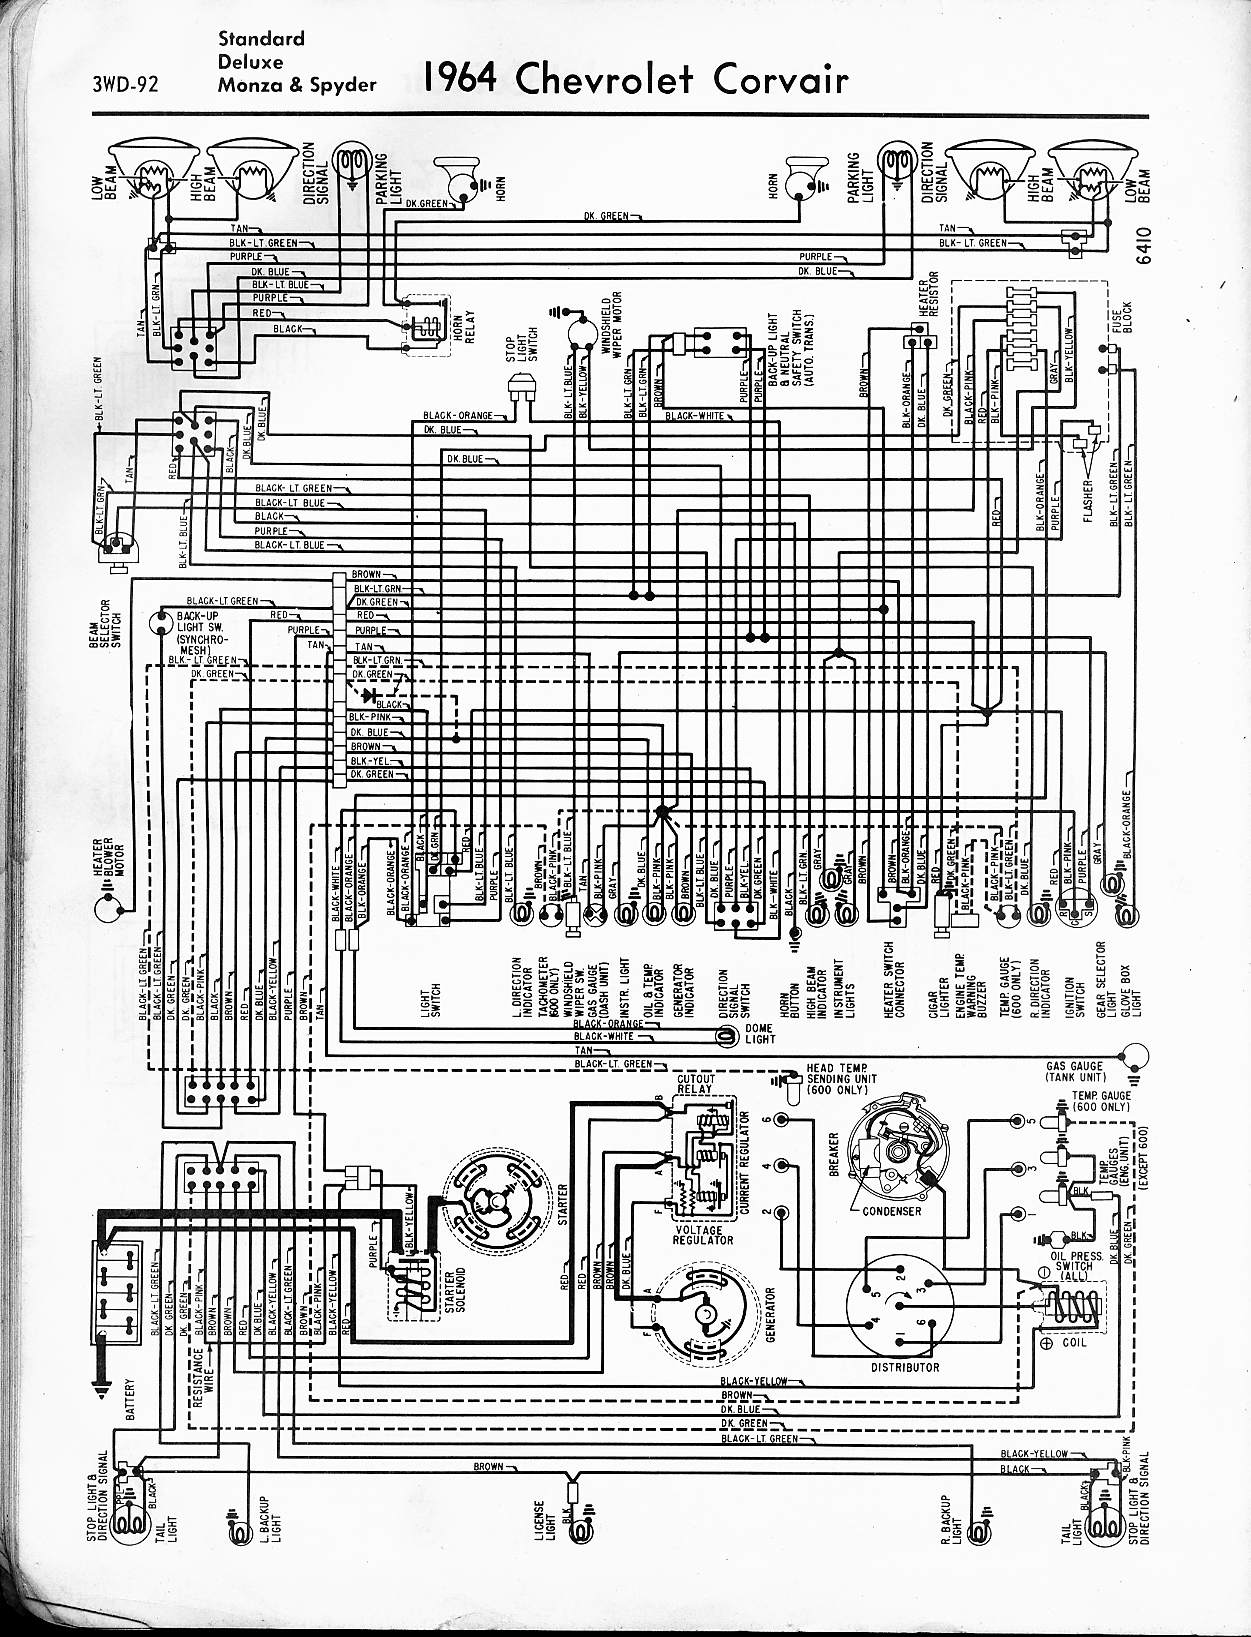 MWireChev64_3WD 092 1965 corvair wiring diagram 1965 chevelle wiring diagram \u2022 free 66 impala wiring diagram at virtualis.co